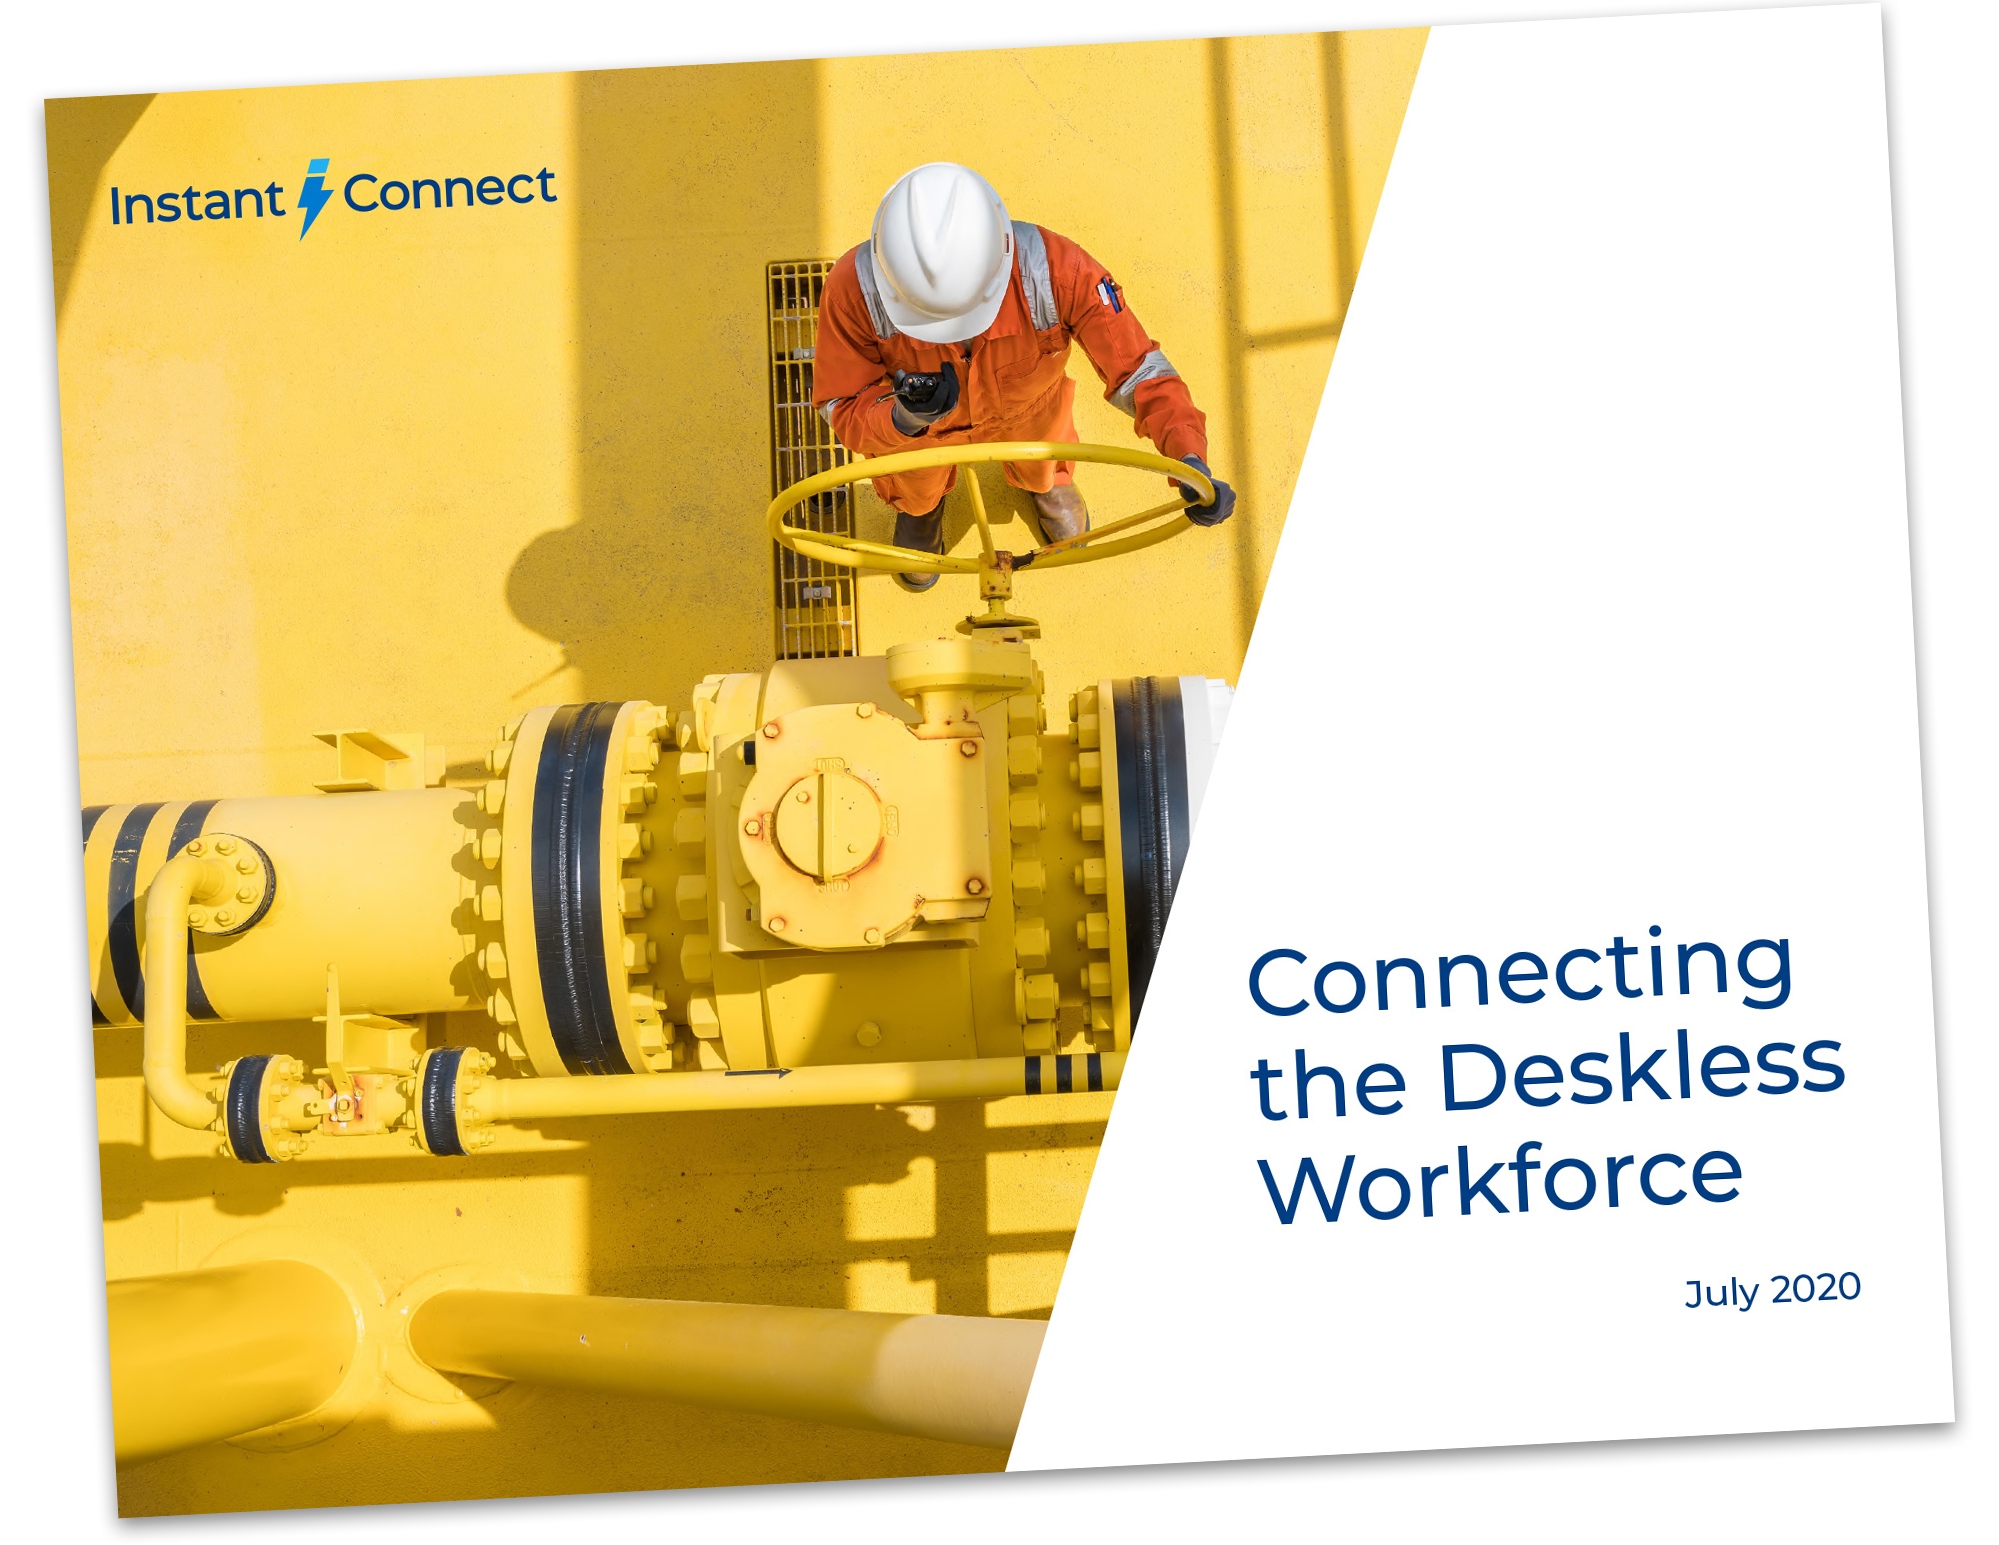 Connecting the Deskless Workforce